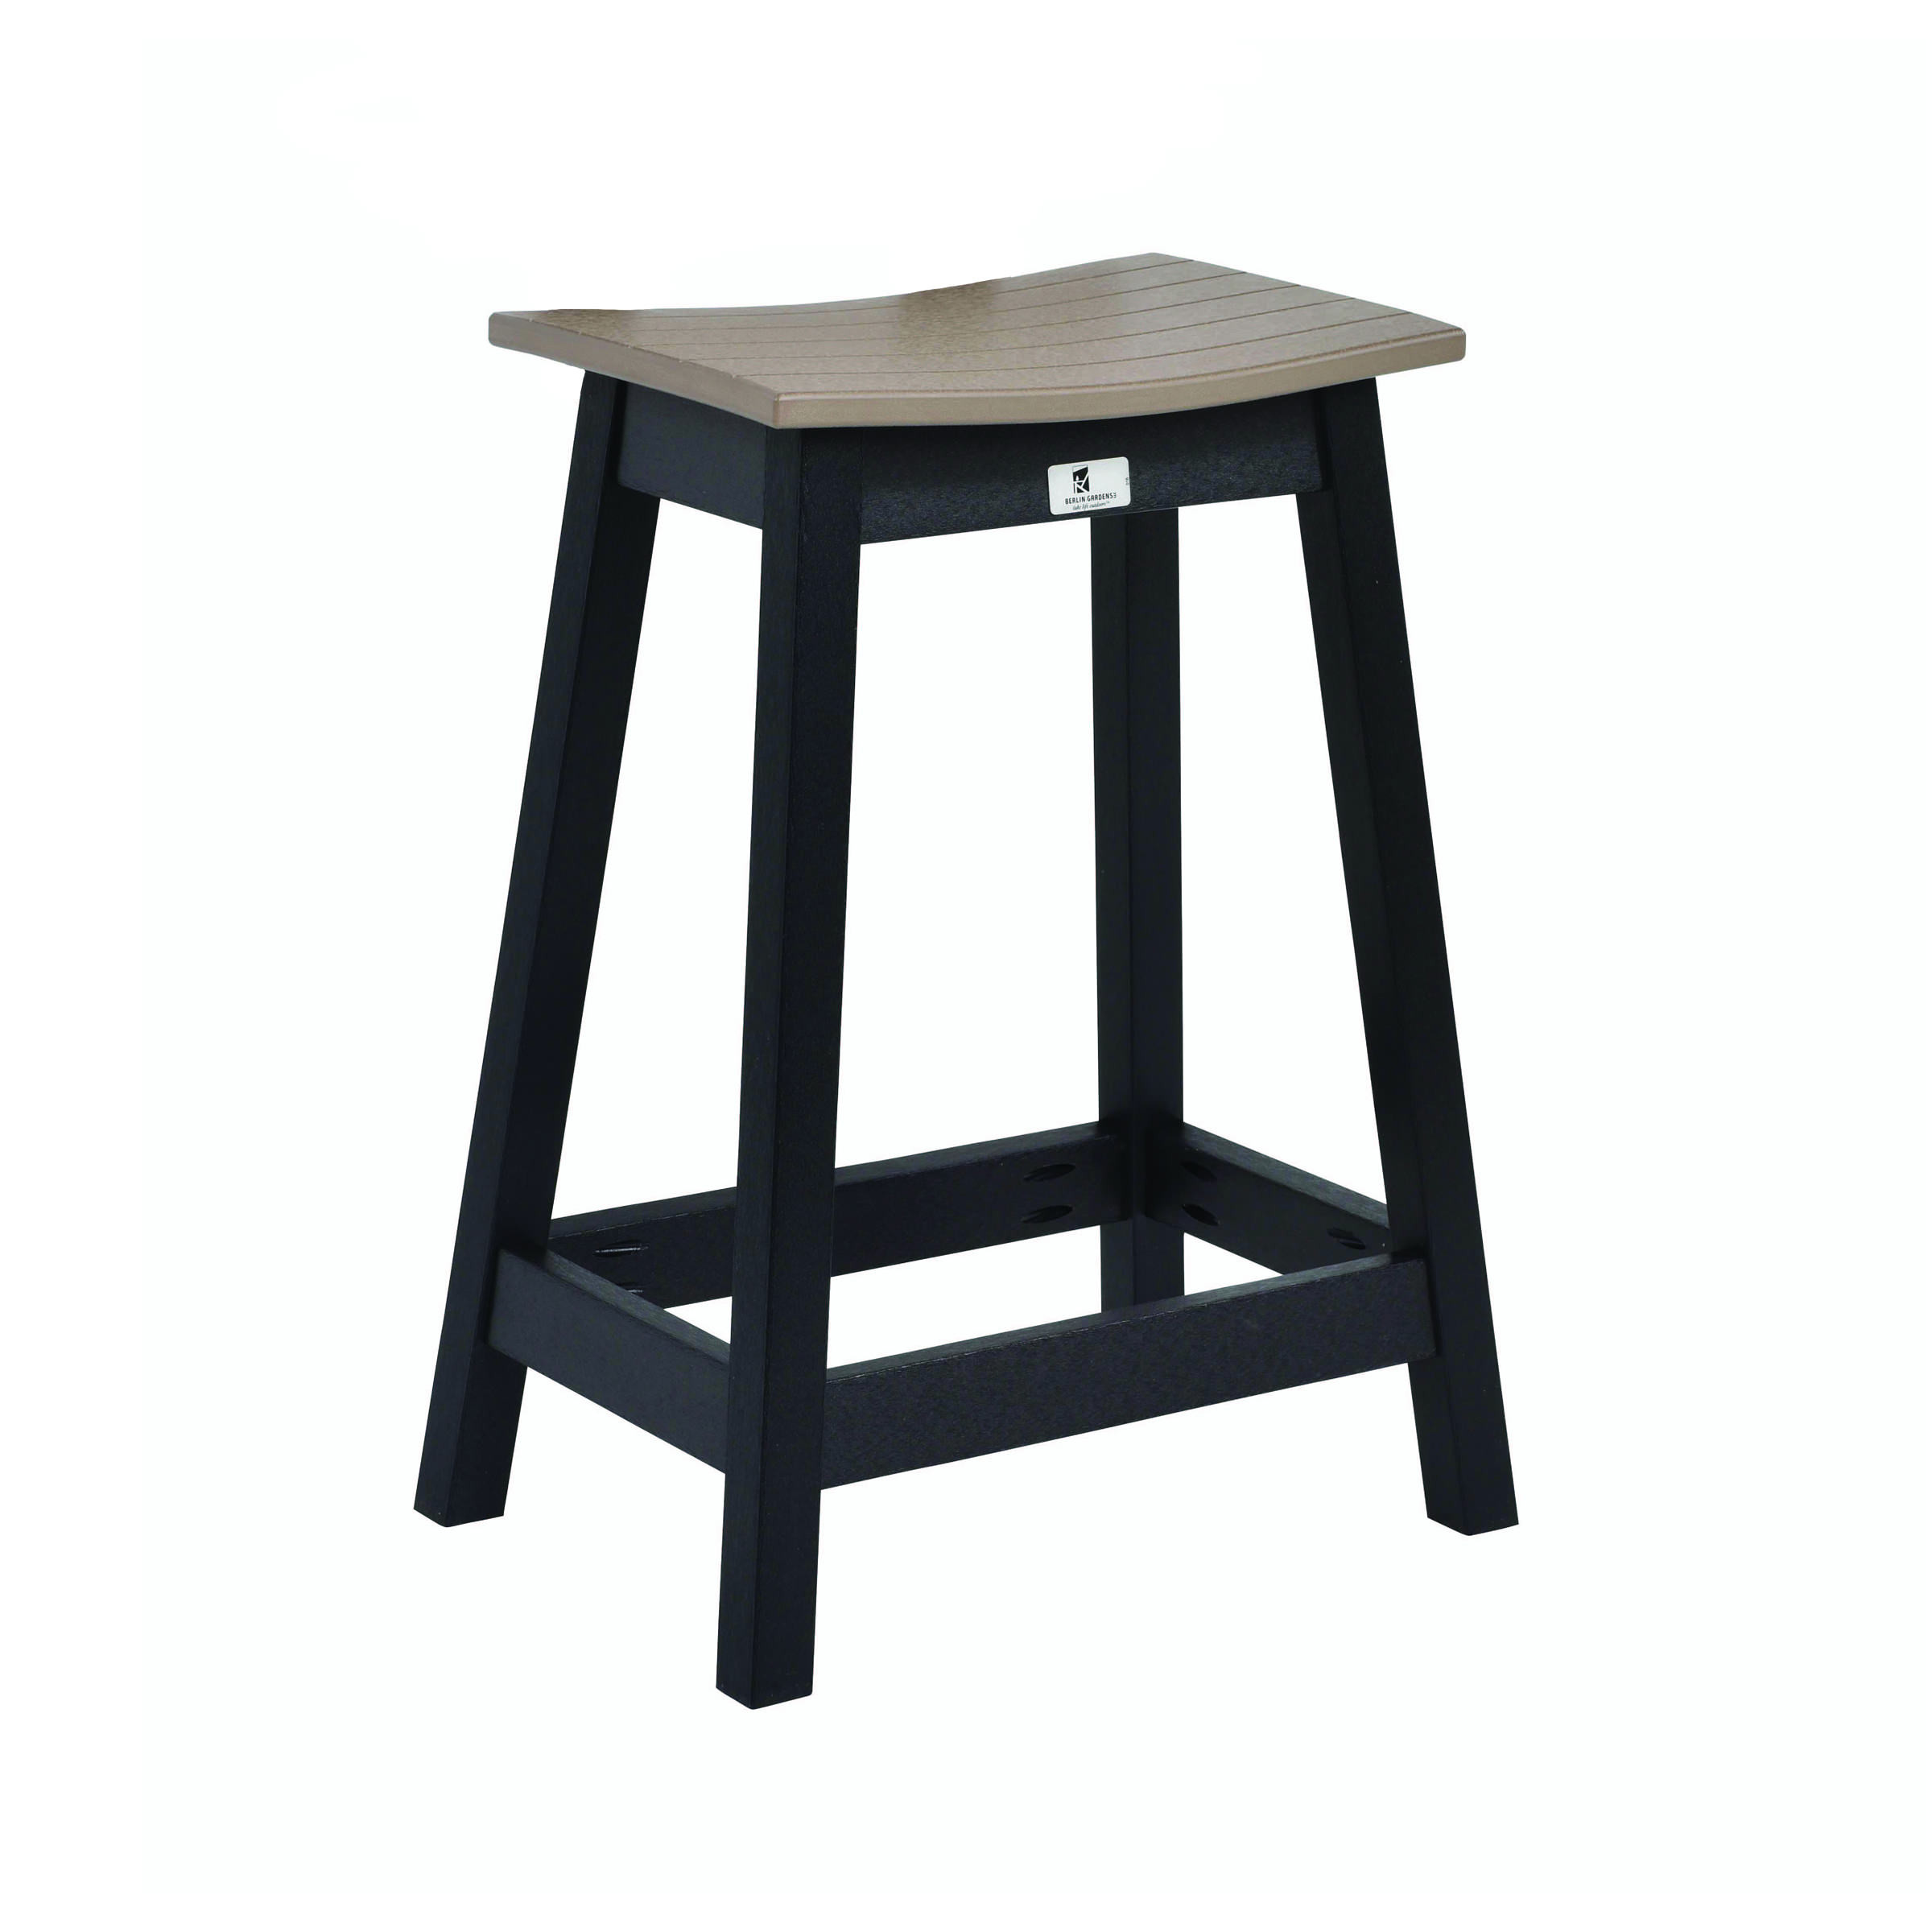 Berlin Gardens Saddle Counter Stool